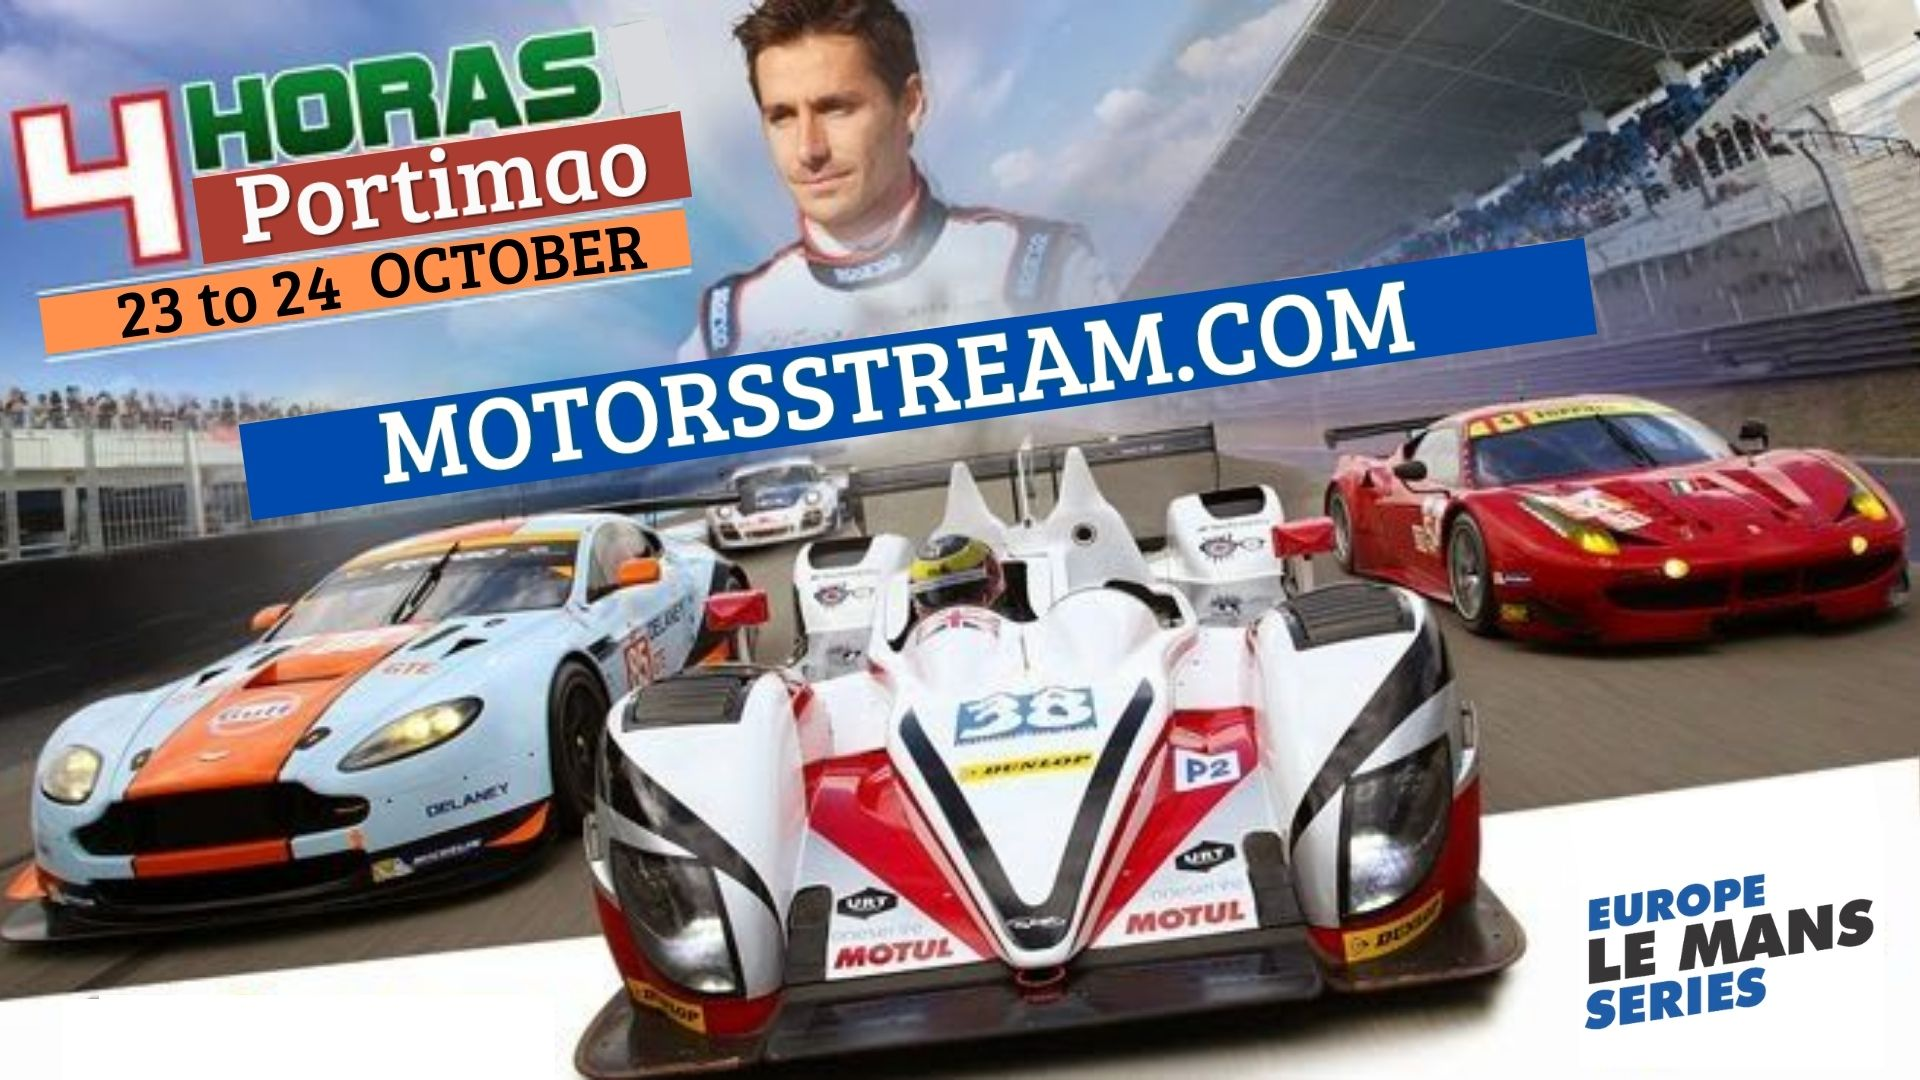 4 Hours Of Portugal Live Stream 2021 | European Le Mans Series